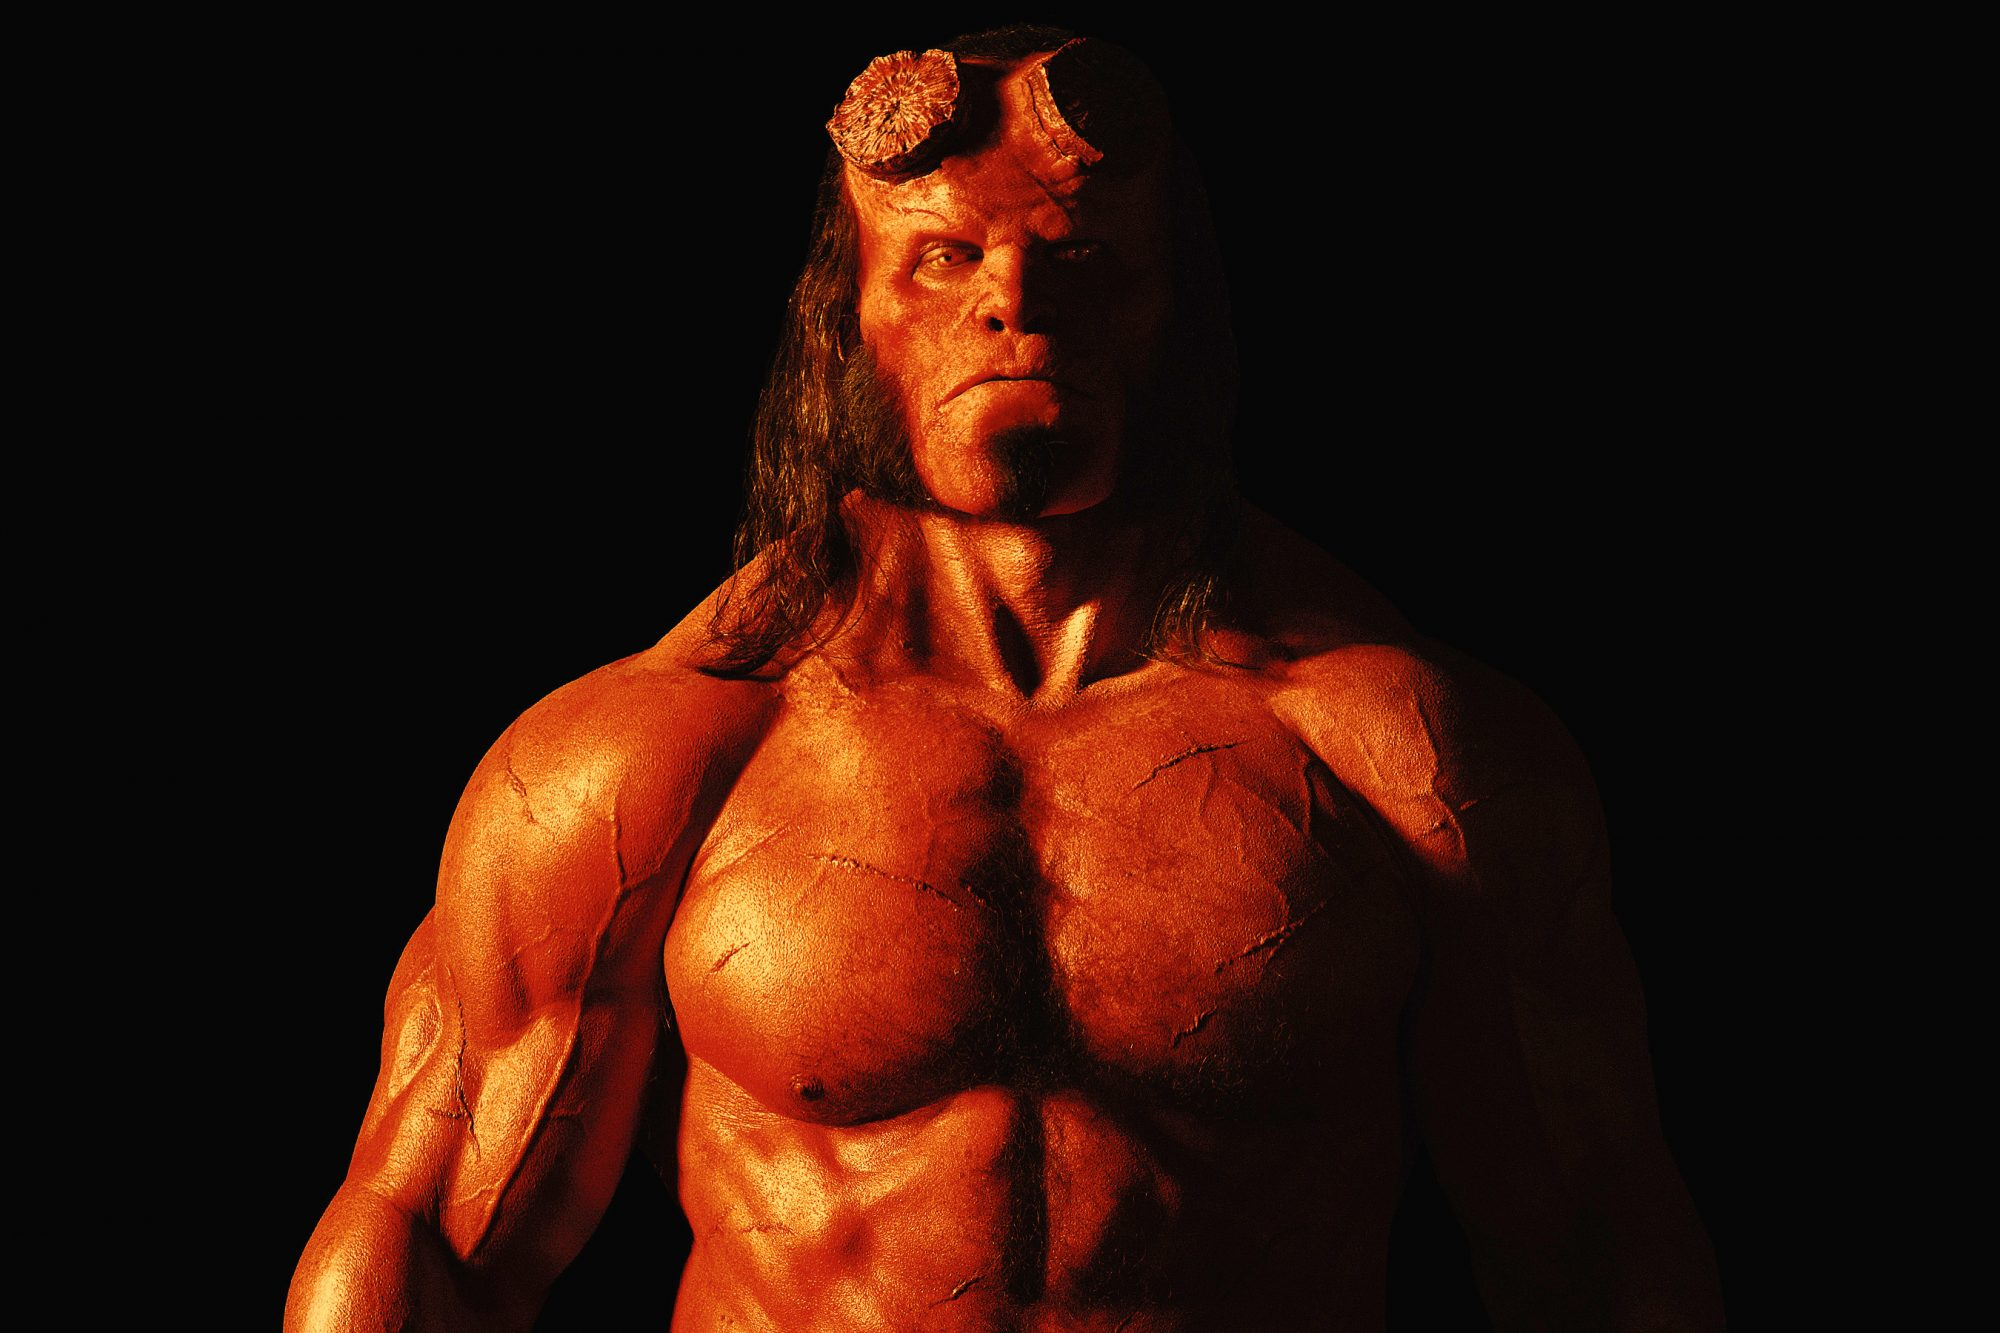 Hellboy---First-Look-Image